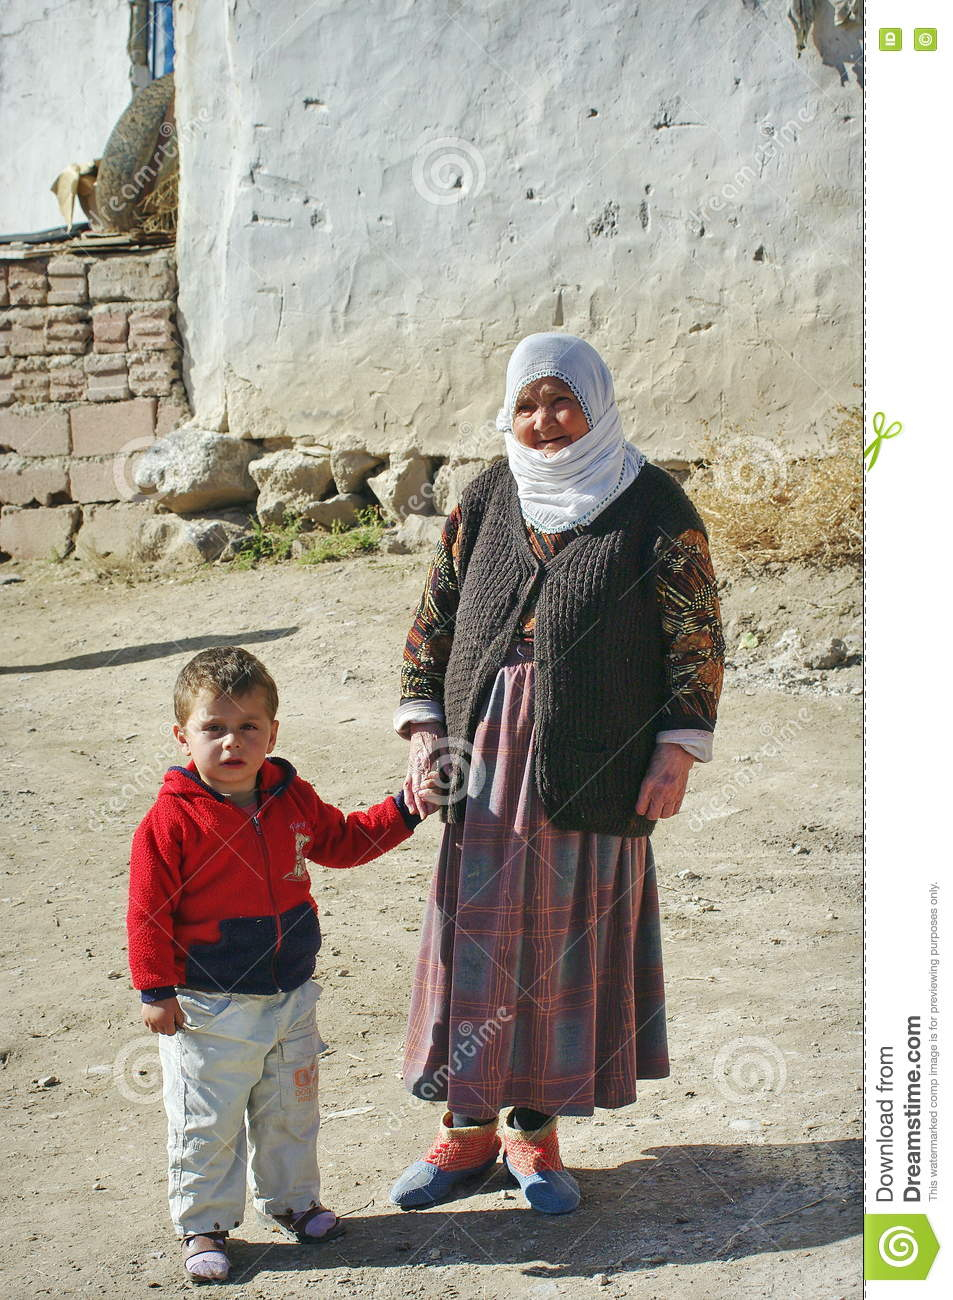 Poor people in a village from Turkey.